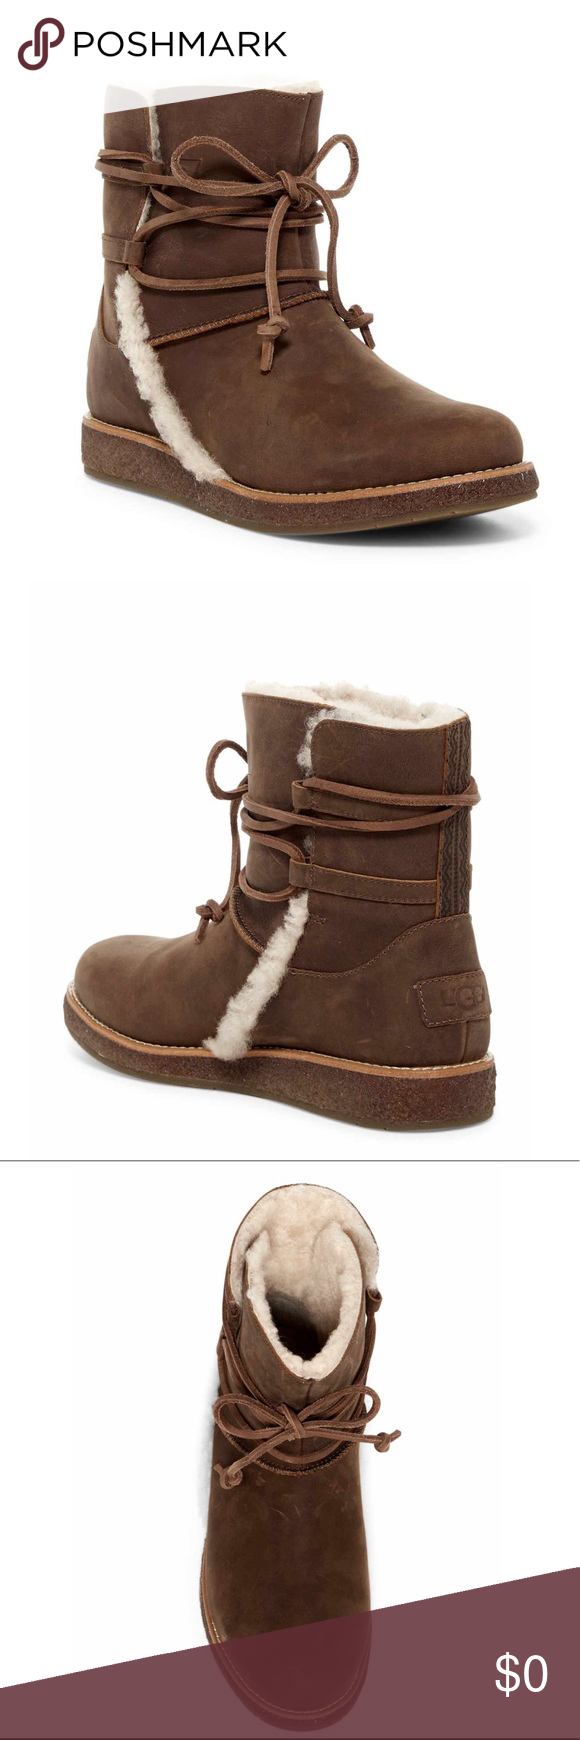 32f03ee93e4 UGG Luisa Brown ankle boot 4/5 WMN 2/3 KIDS NWT AWESOME UGG ...